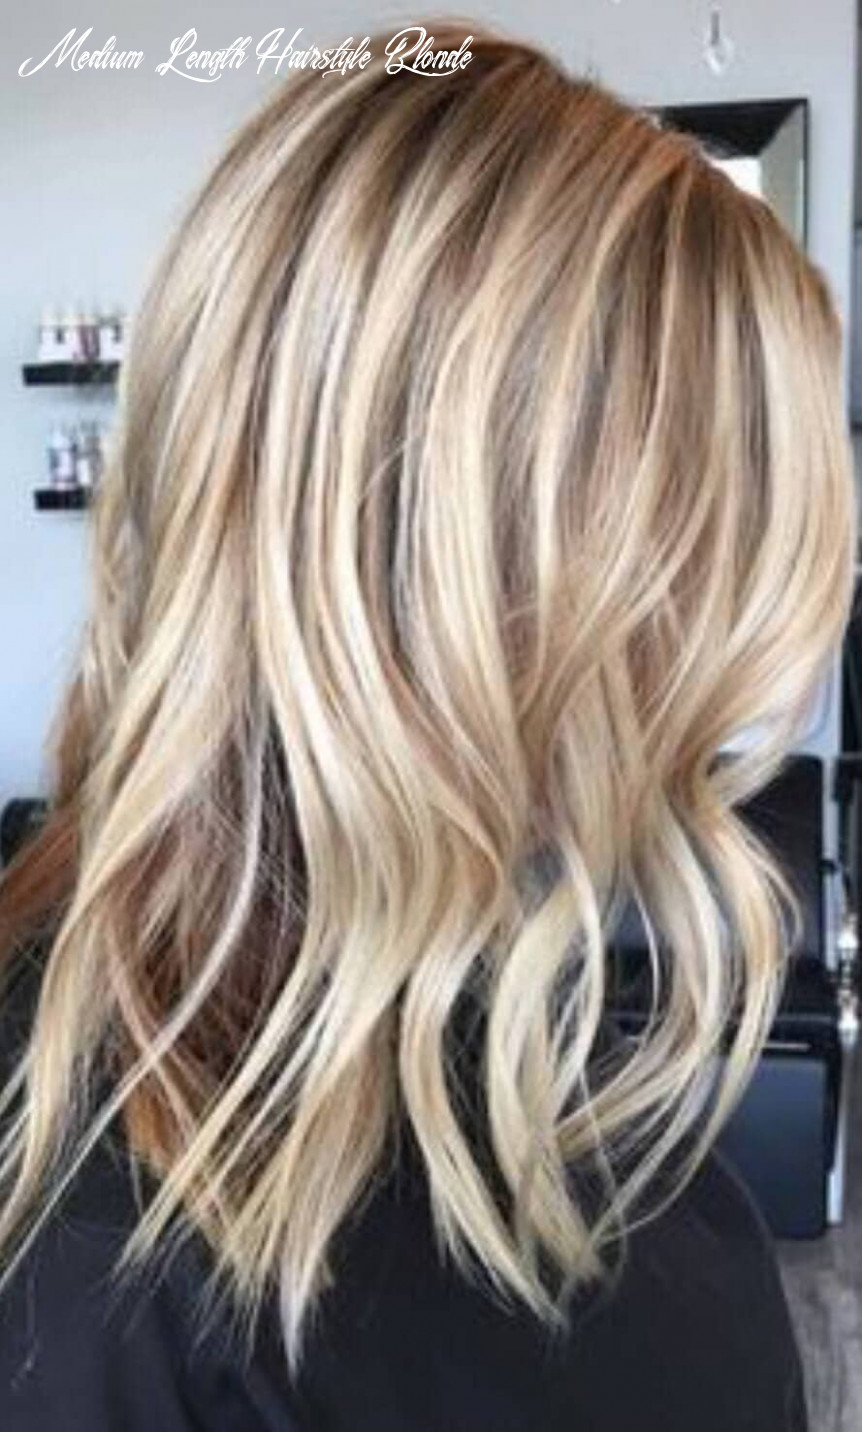 10 best blond hairstyles that will make you look young again medium length hairstyle blonde